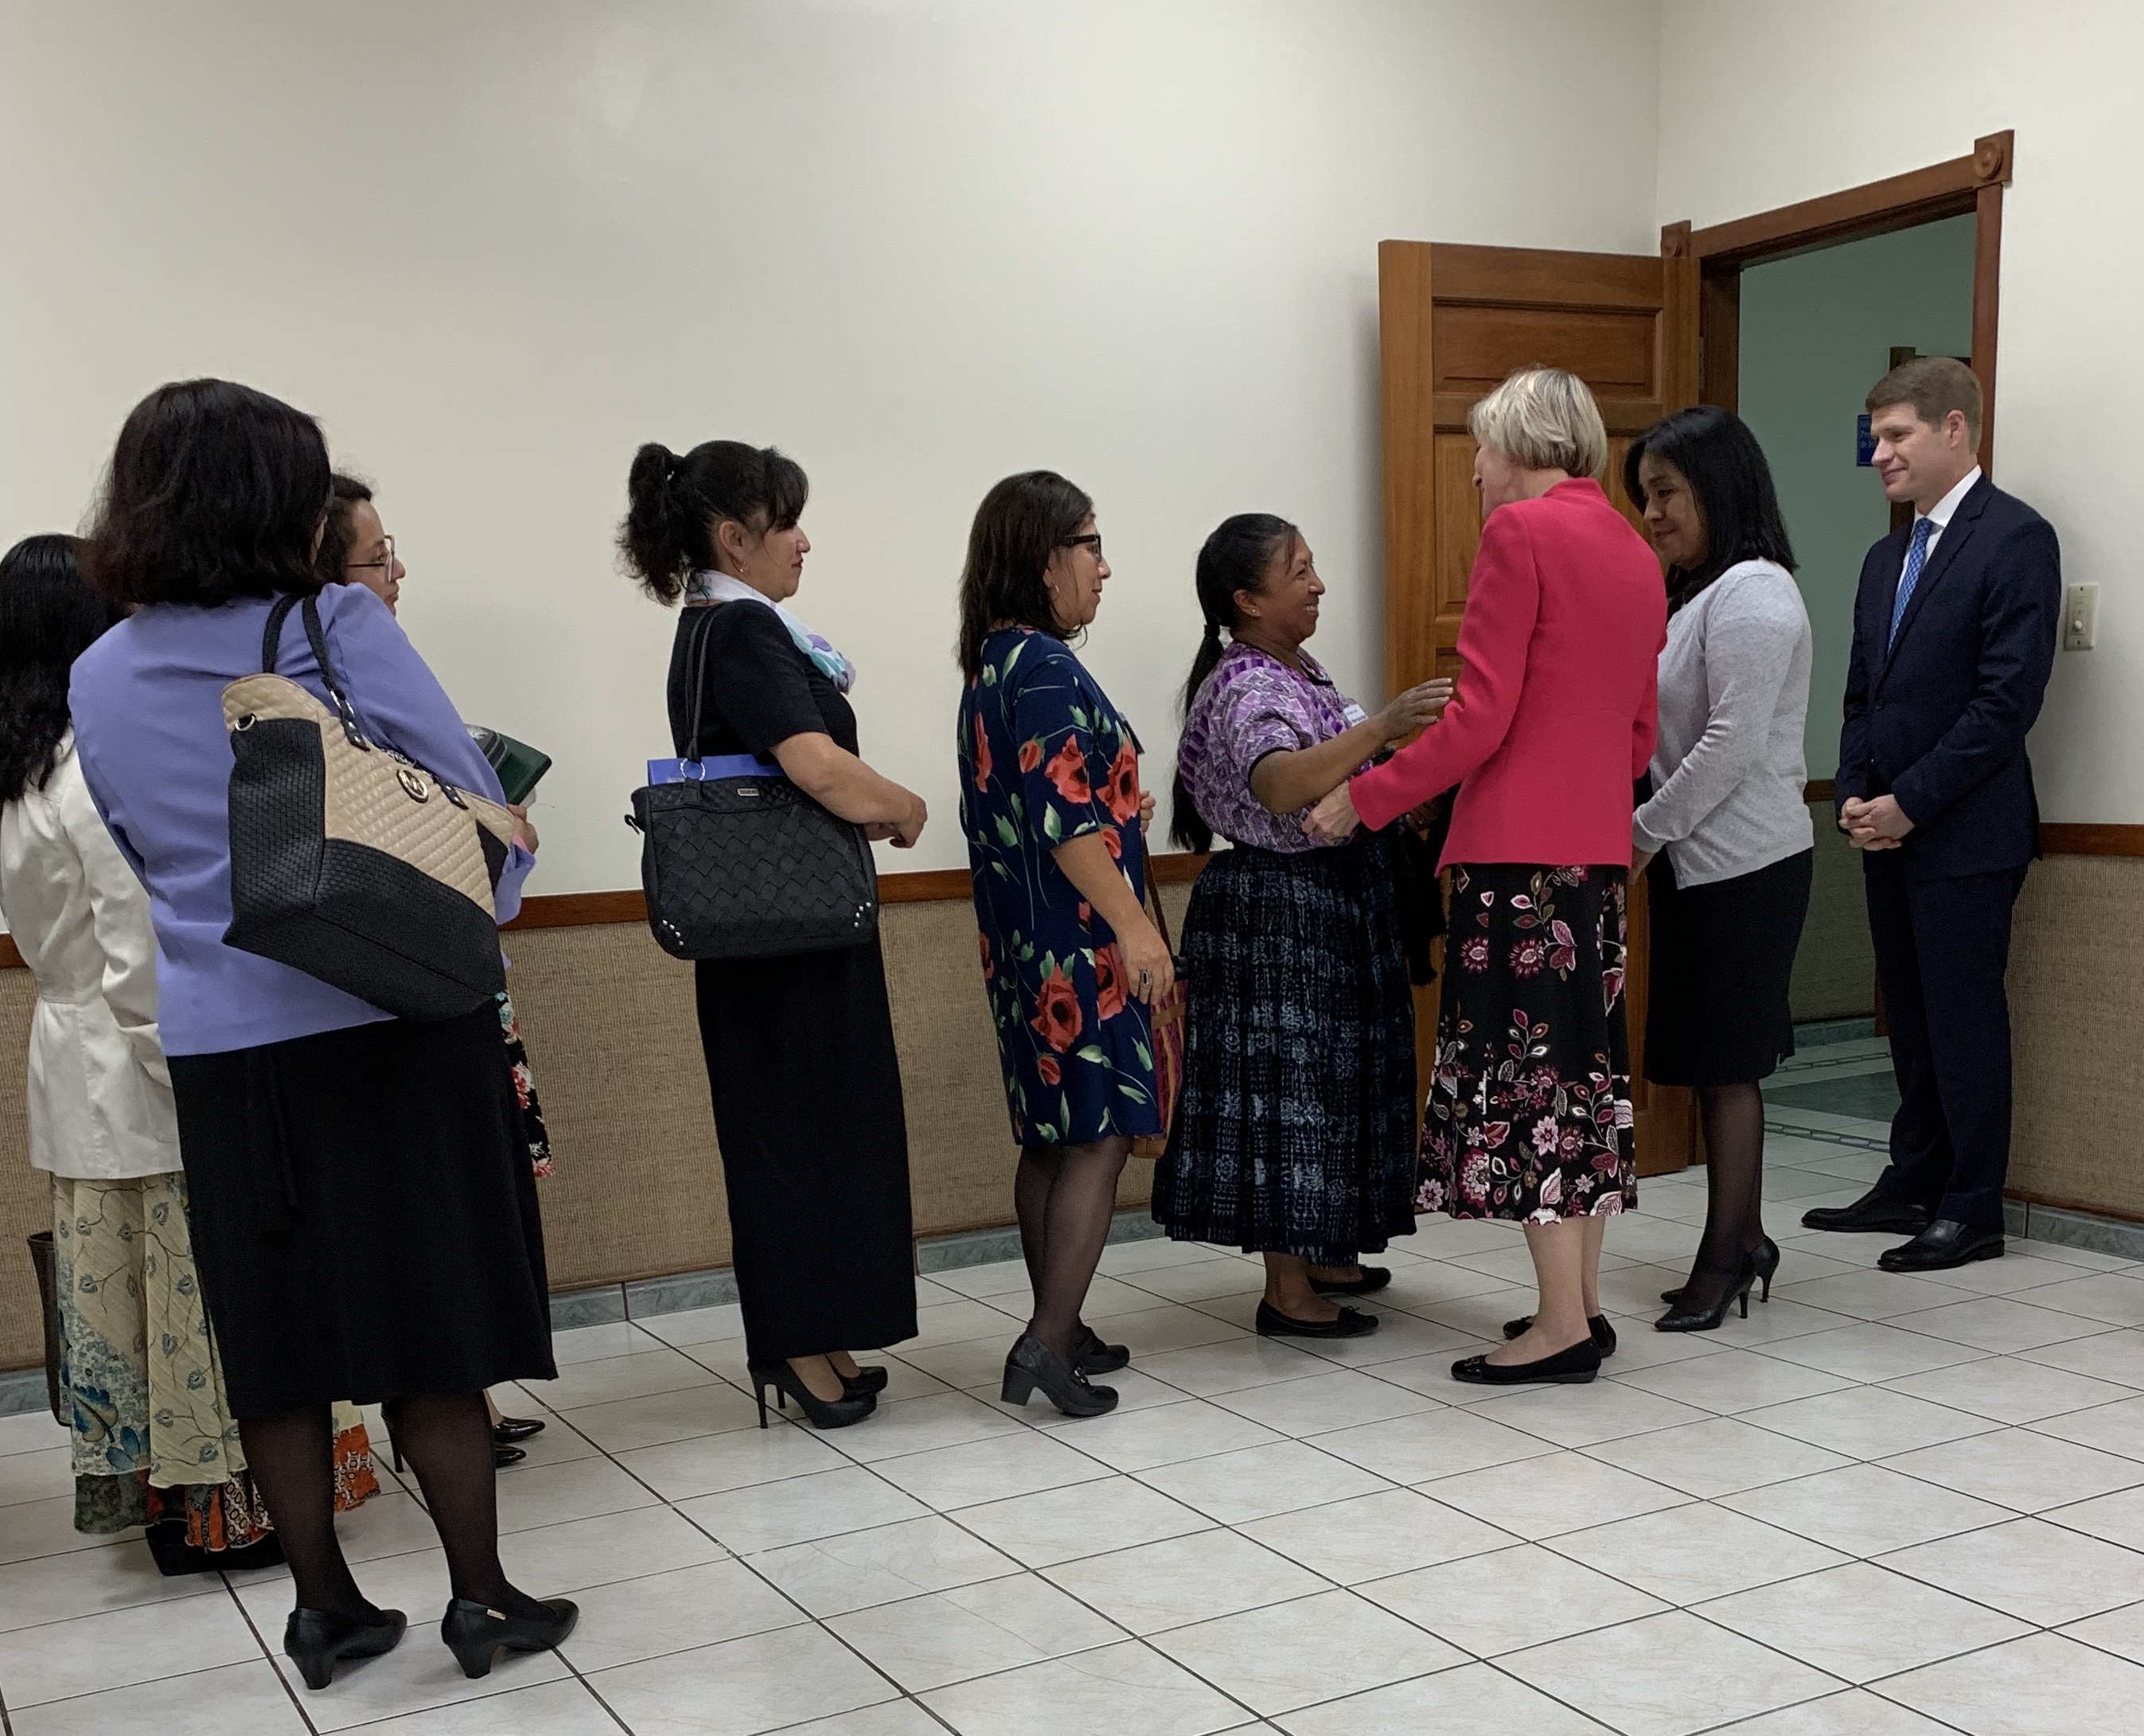 Sister Jean B. Bingham greets members in Central America during a recent ministering trip to the area in September 2019.